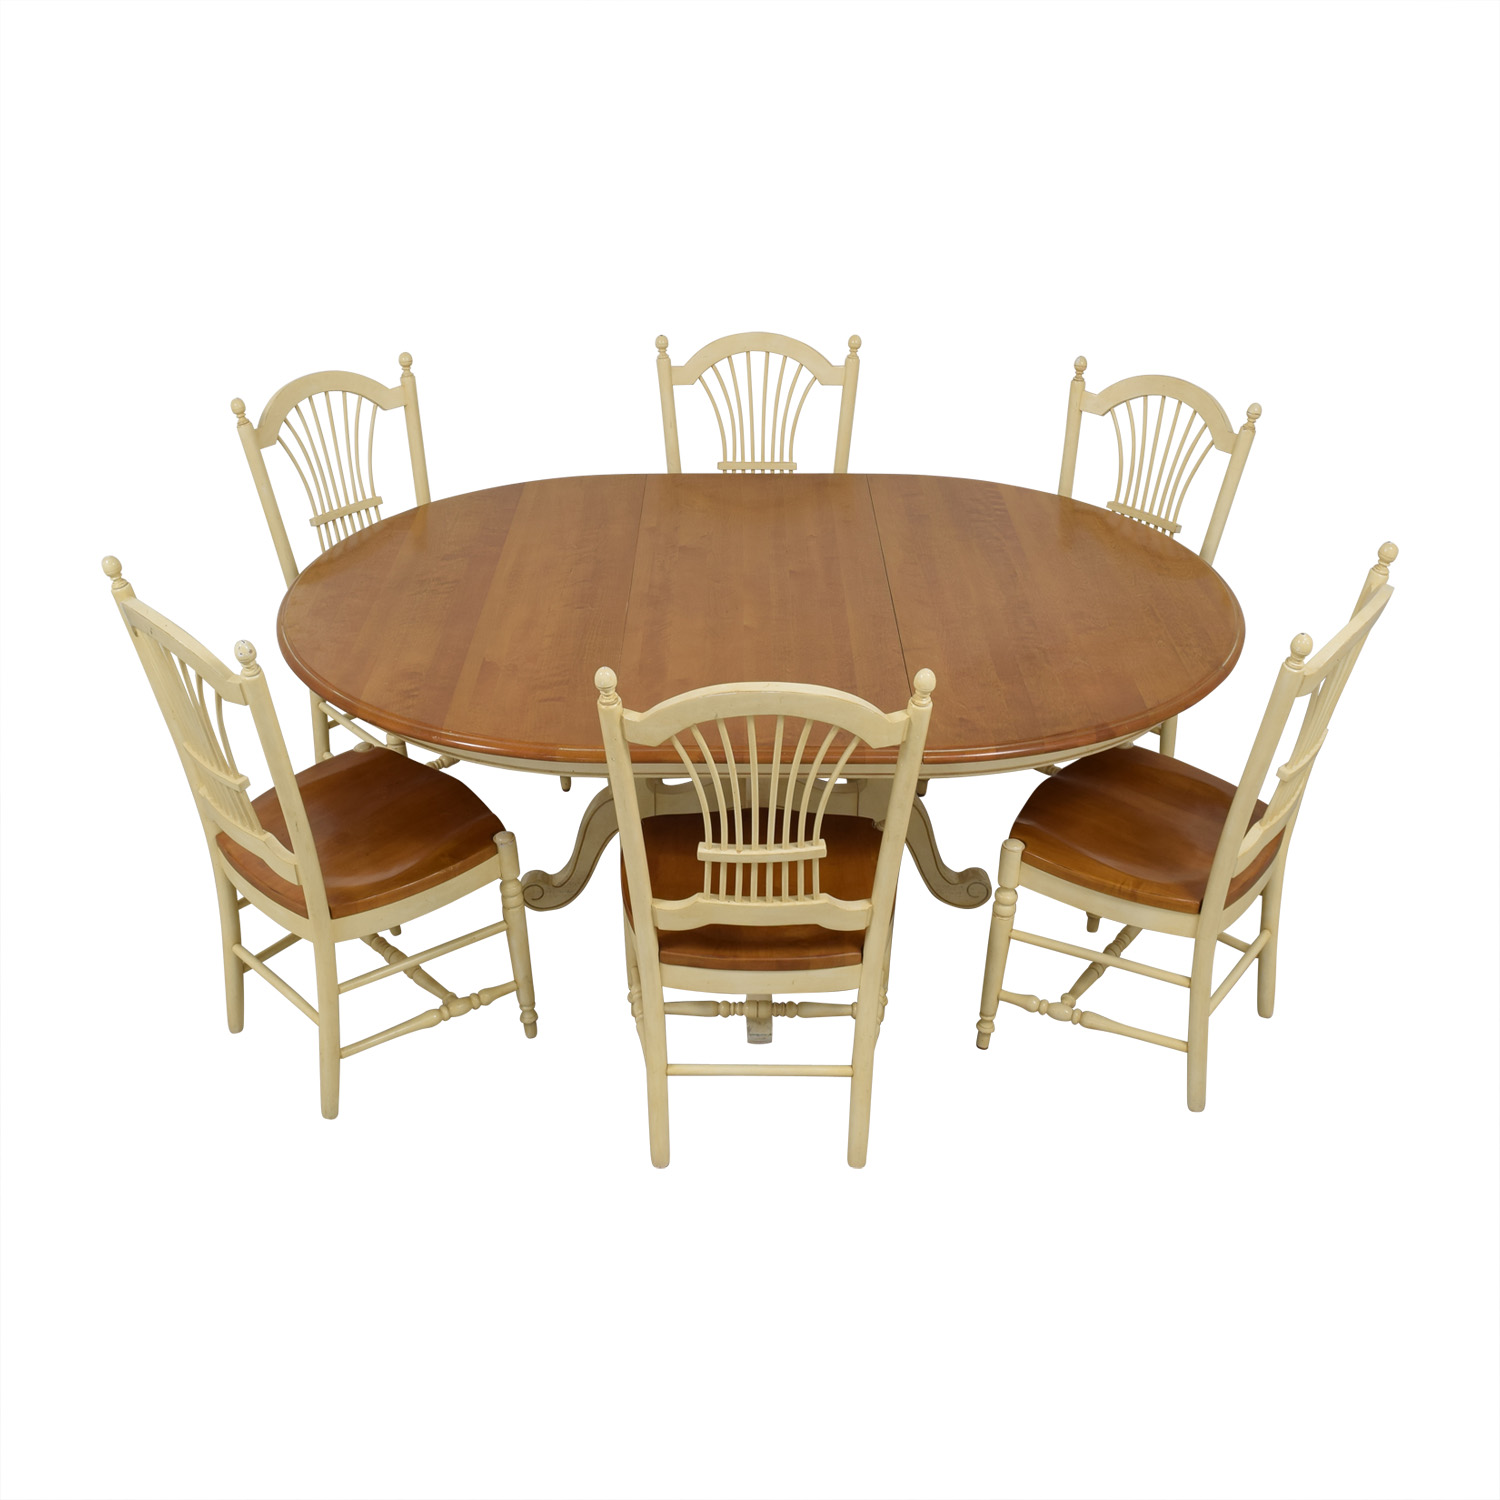 Ethan Allen Ethan Allen Country French Dining Set nj